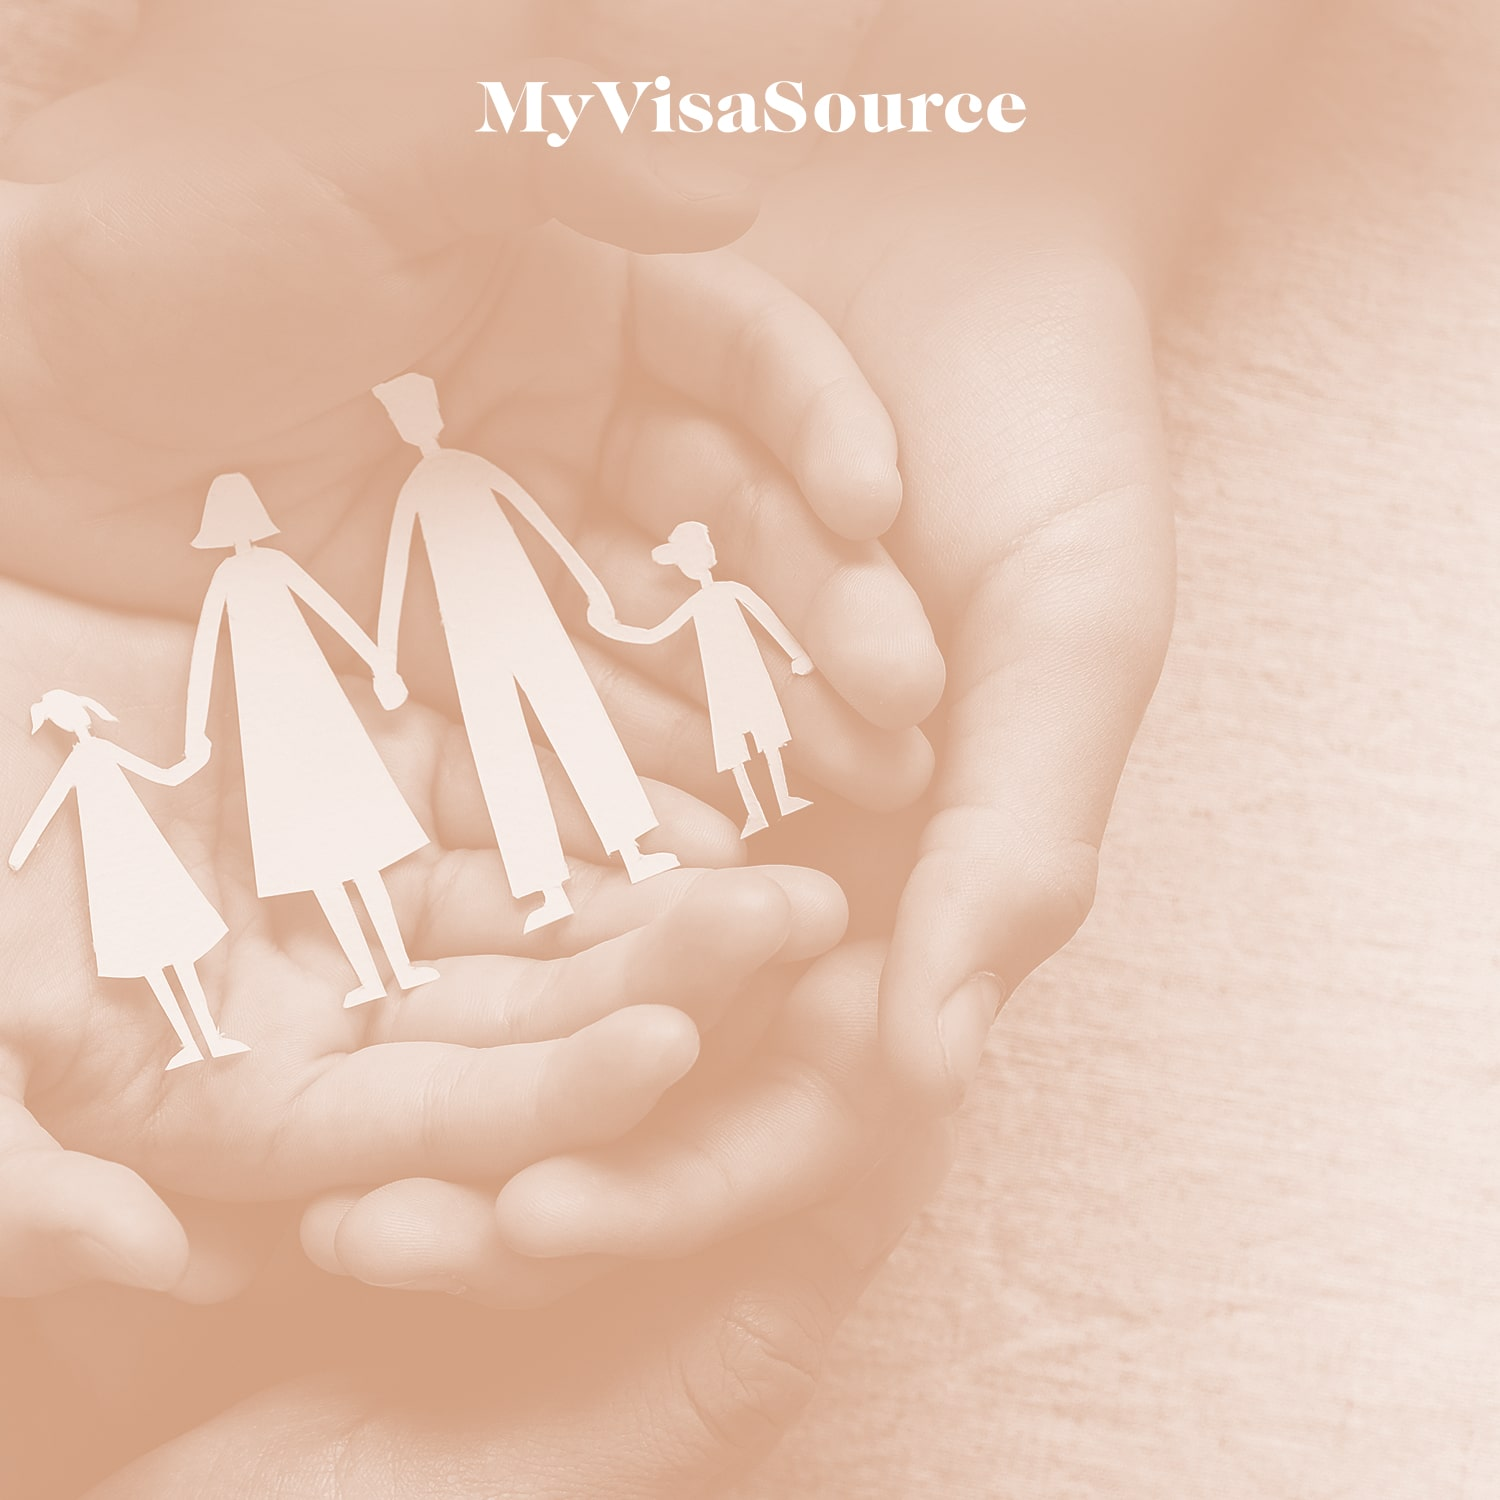 paper-cut-out-of-family-on-family-open-palms-my-visa-source-min